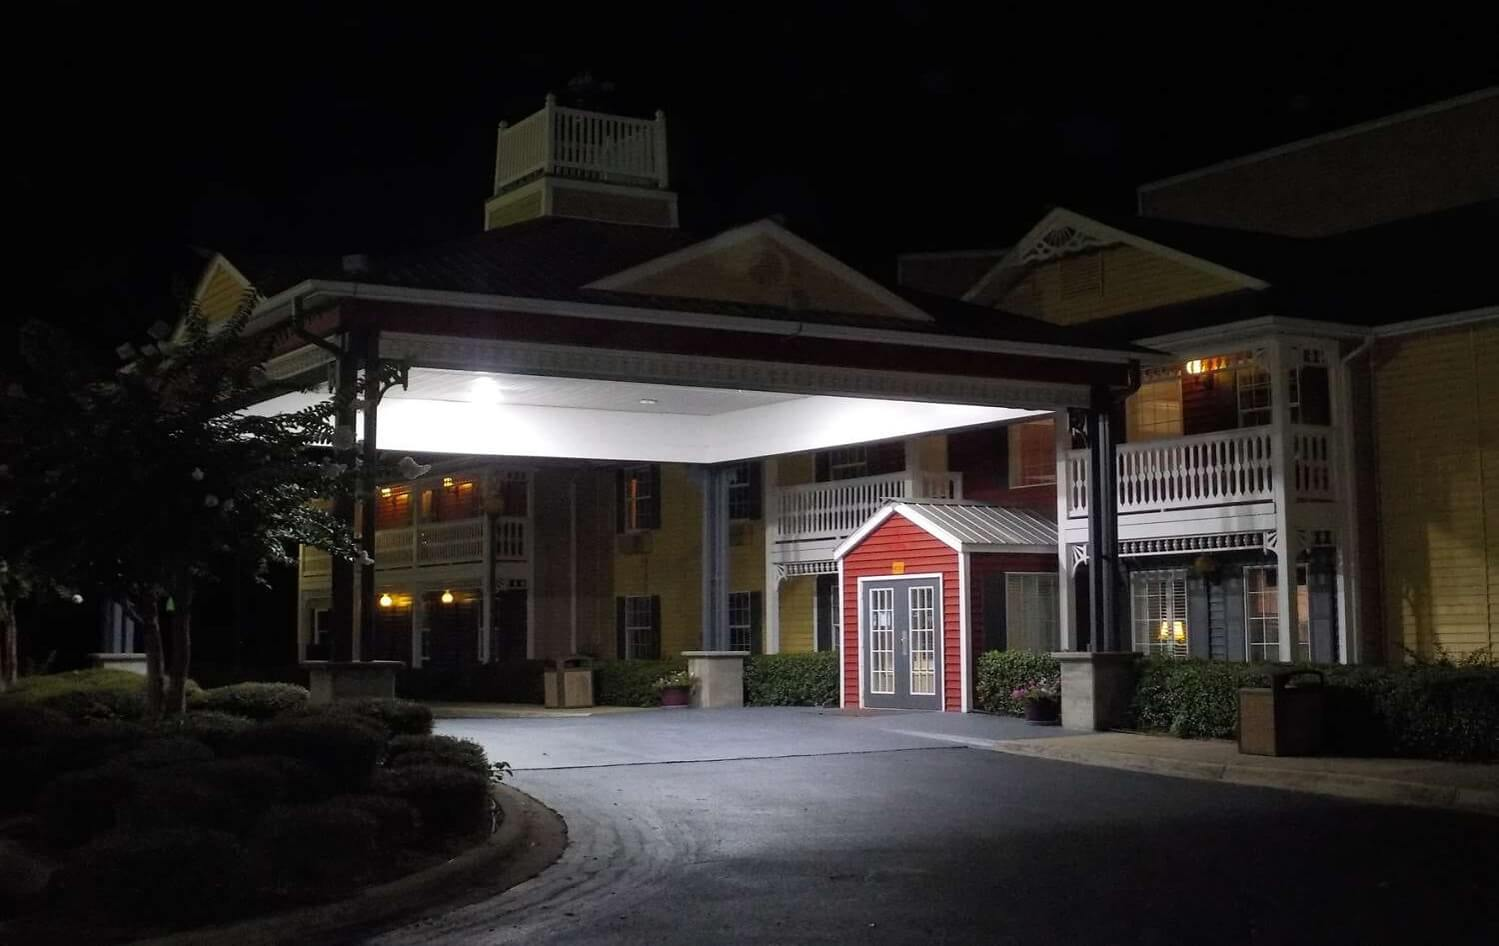 SureStay Hotel By Best Western - Exterior Night